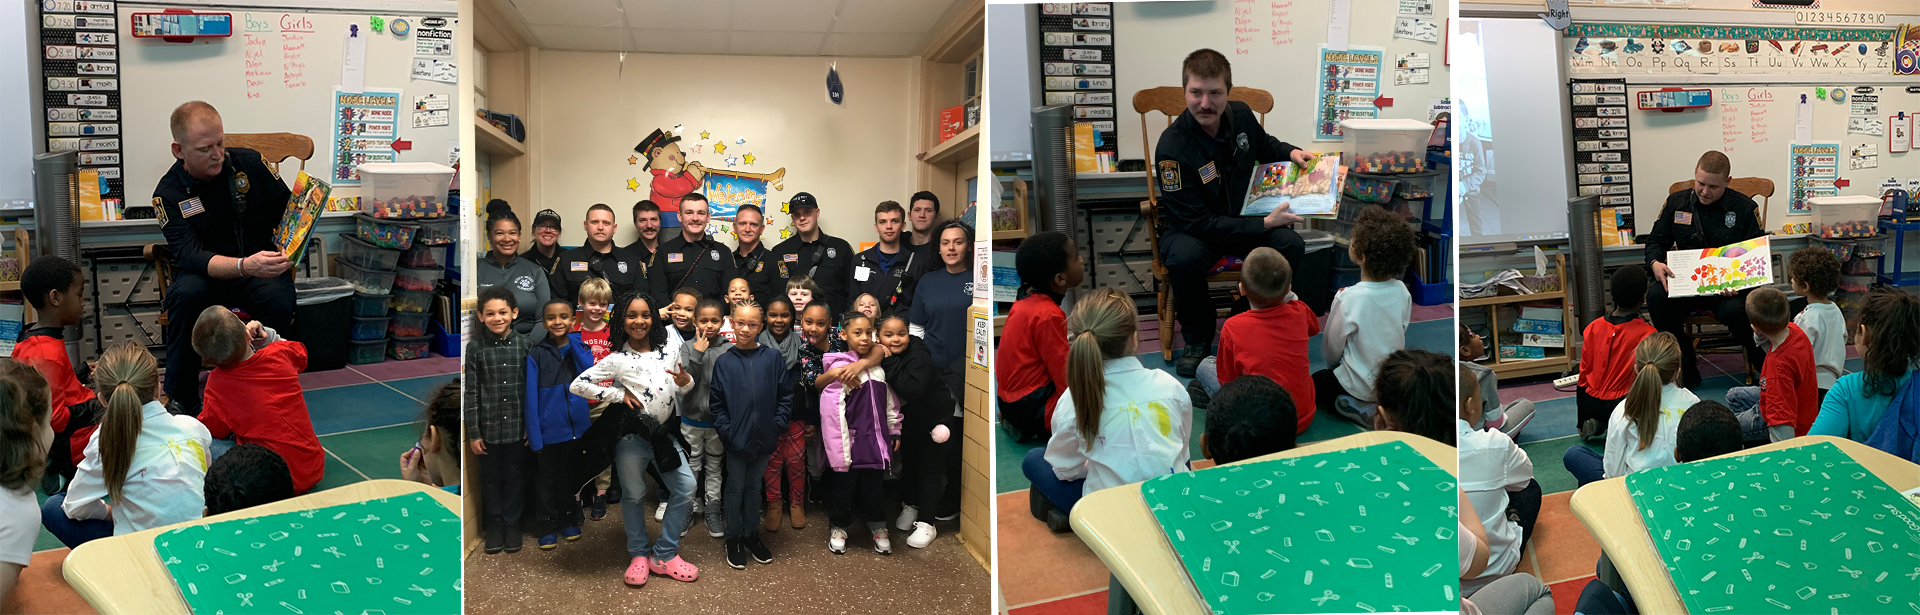 Fire Department reading to students